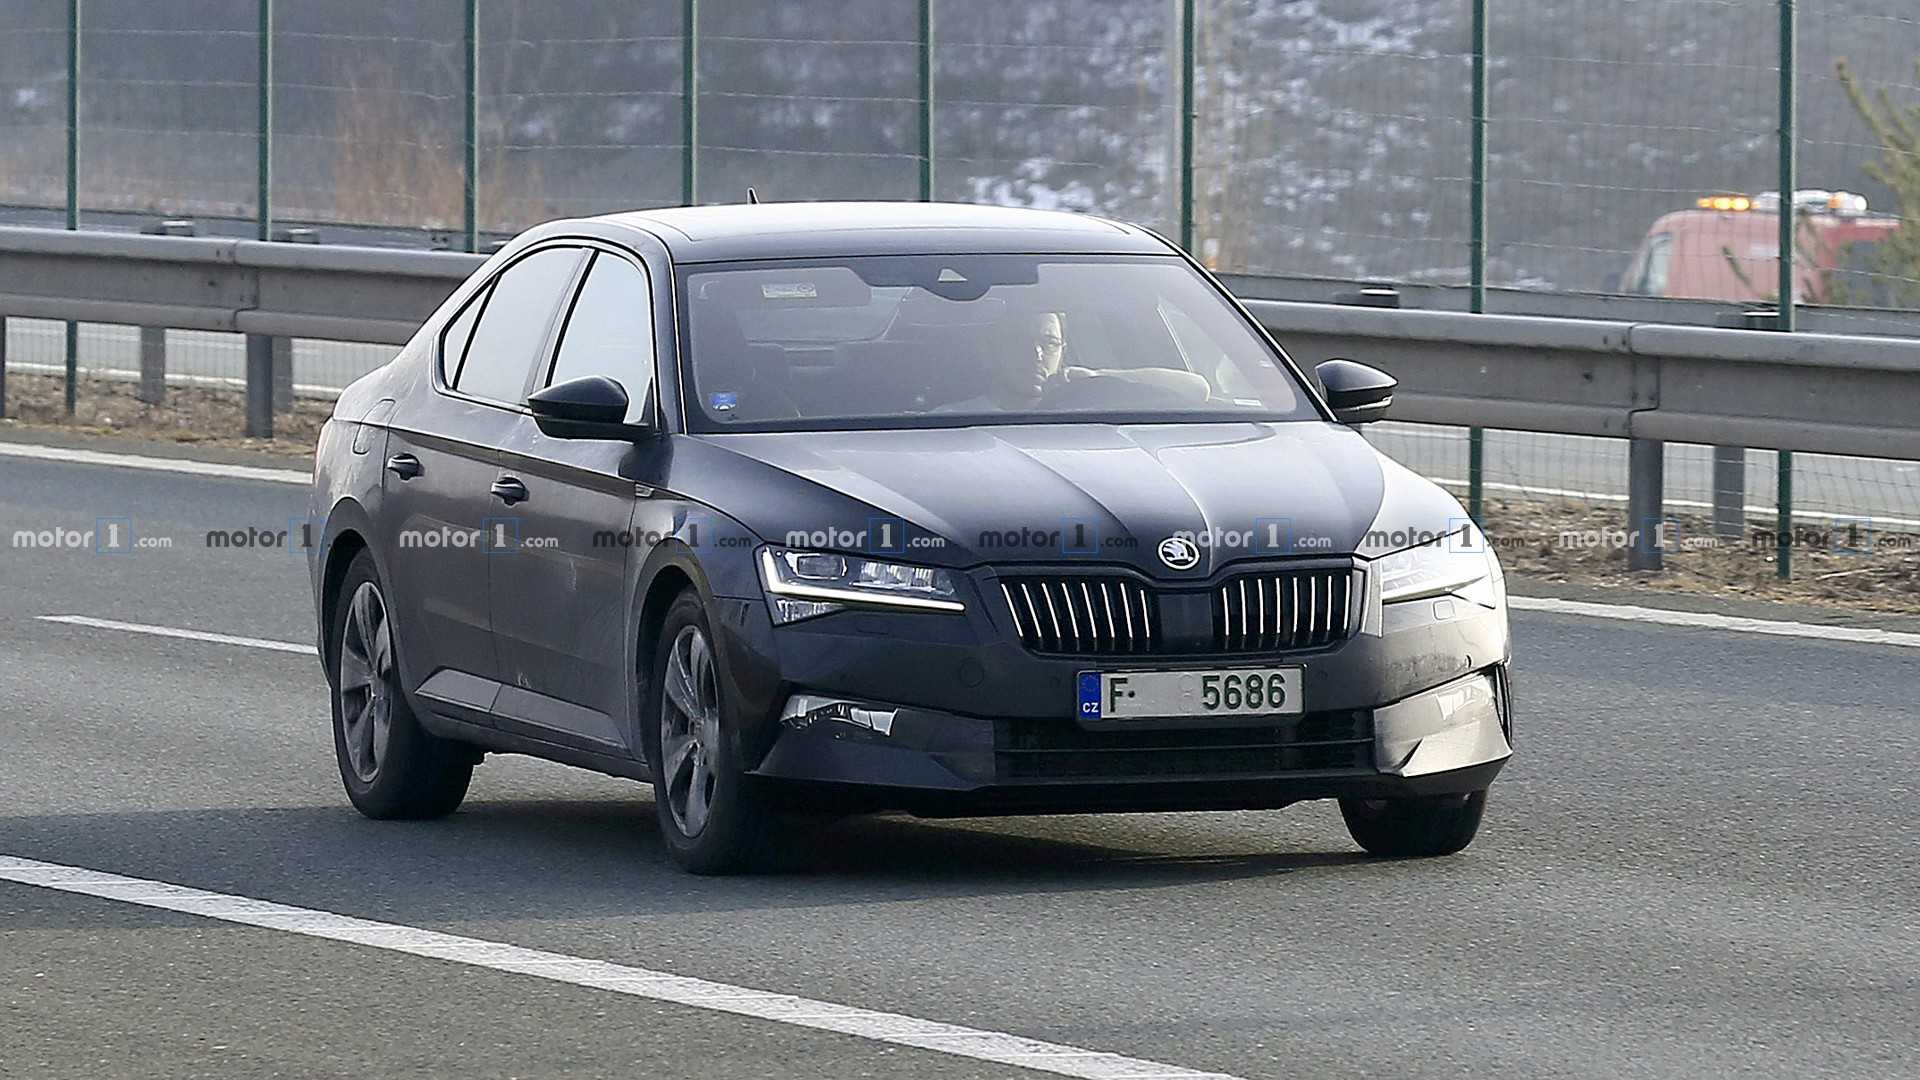 Photos showing the facelifted Skoda Superb liftback coursing along the streets without any kind of test mule camouflage on have recently emerged online